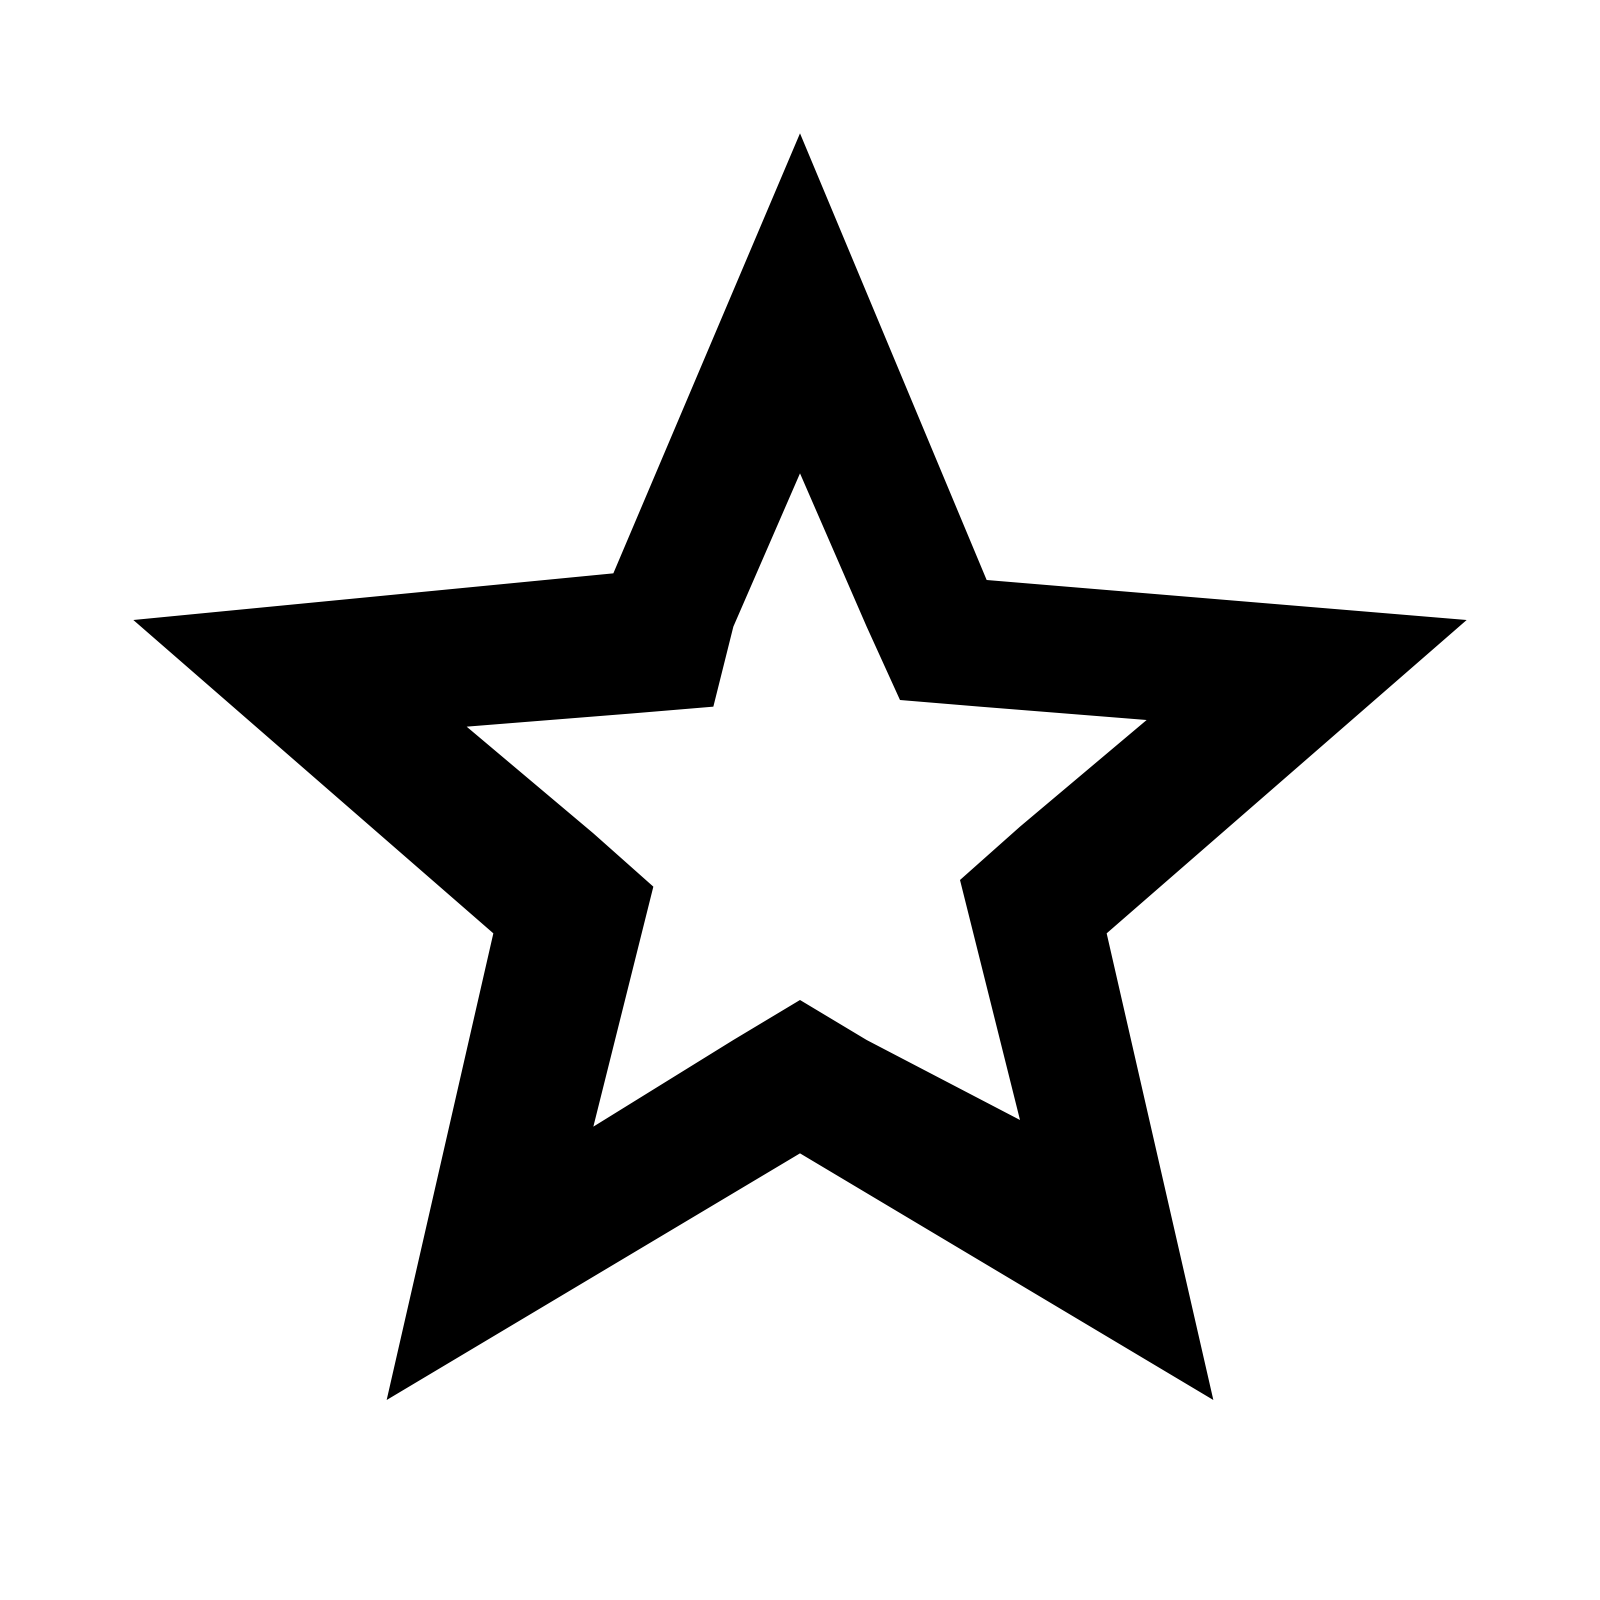 Star icon - PNG Star Black And White